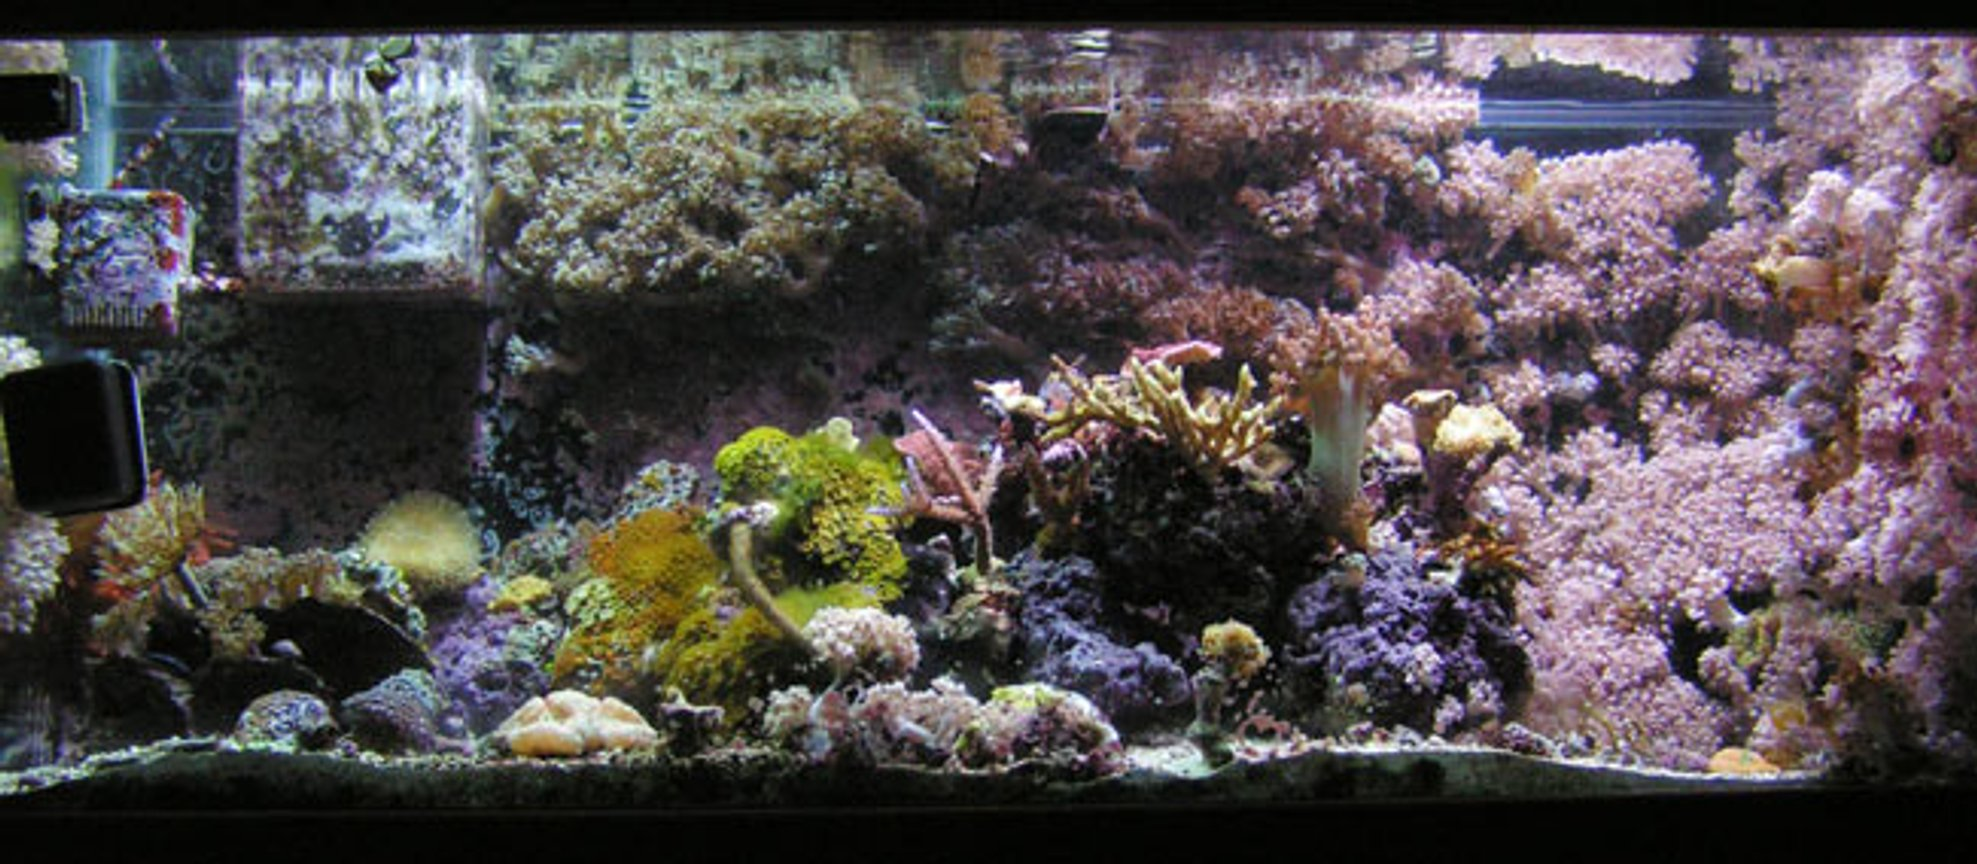 reef tank (mostly live coral and fish) - Full Tank pic (small about a year ago).